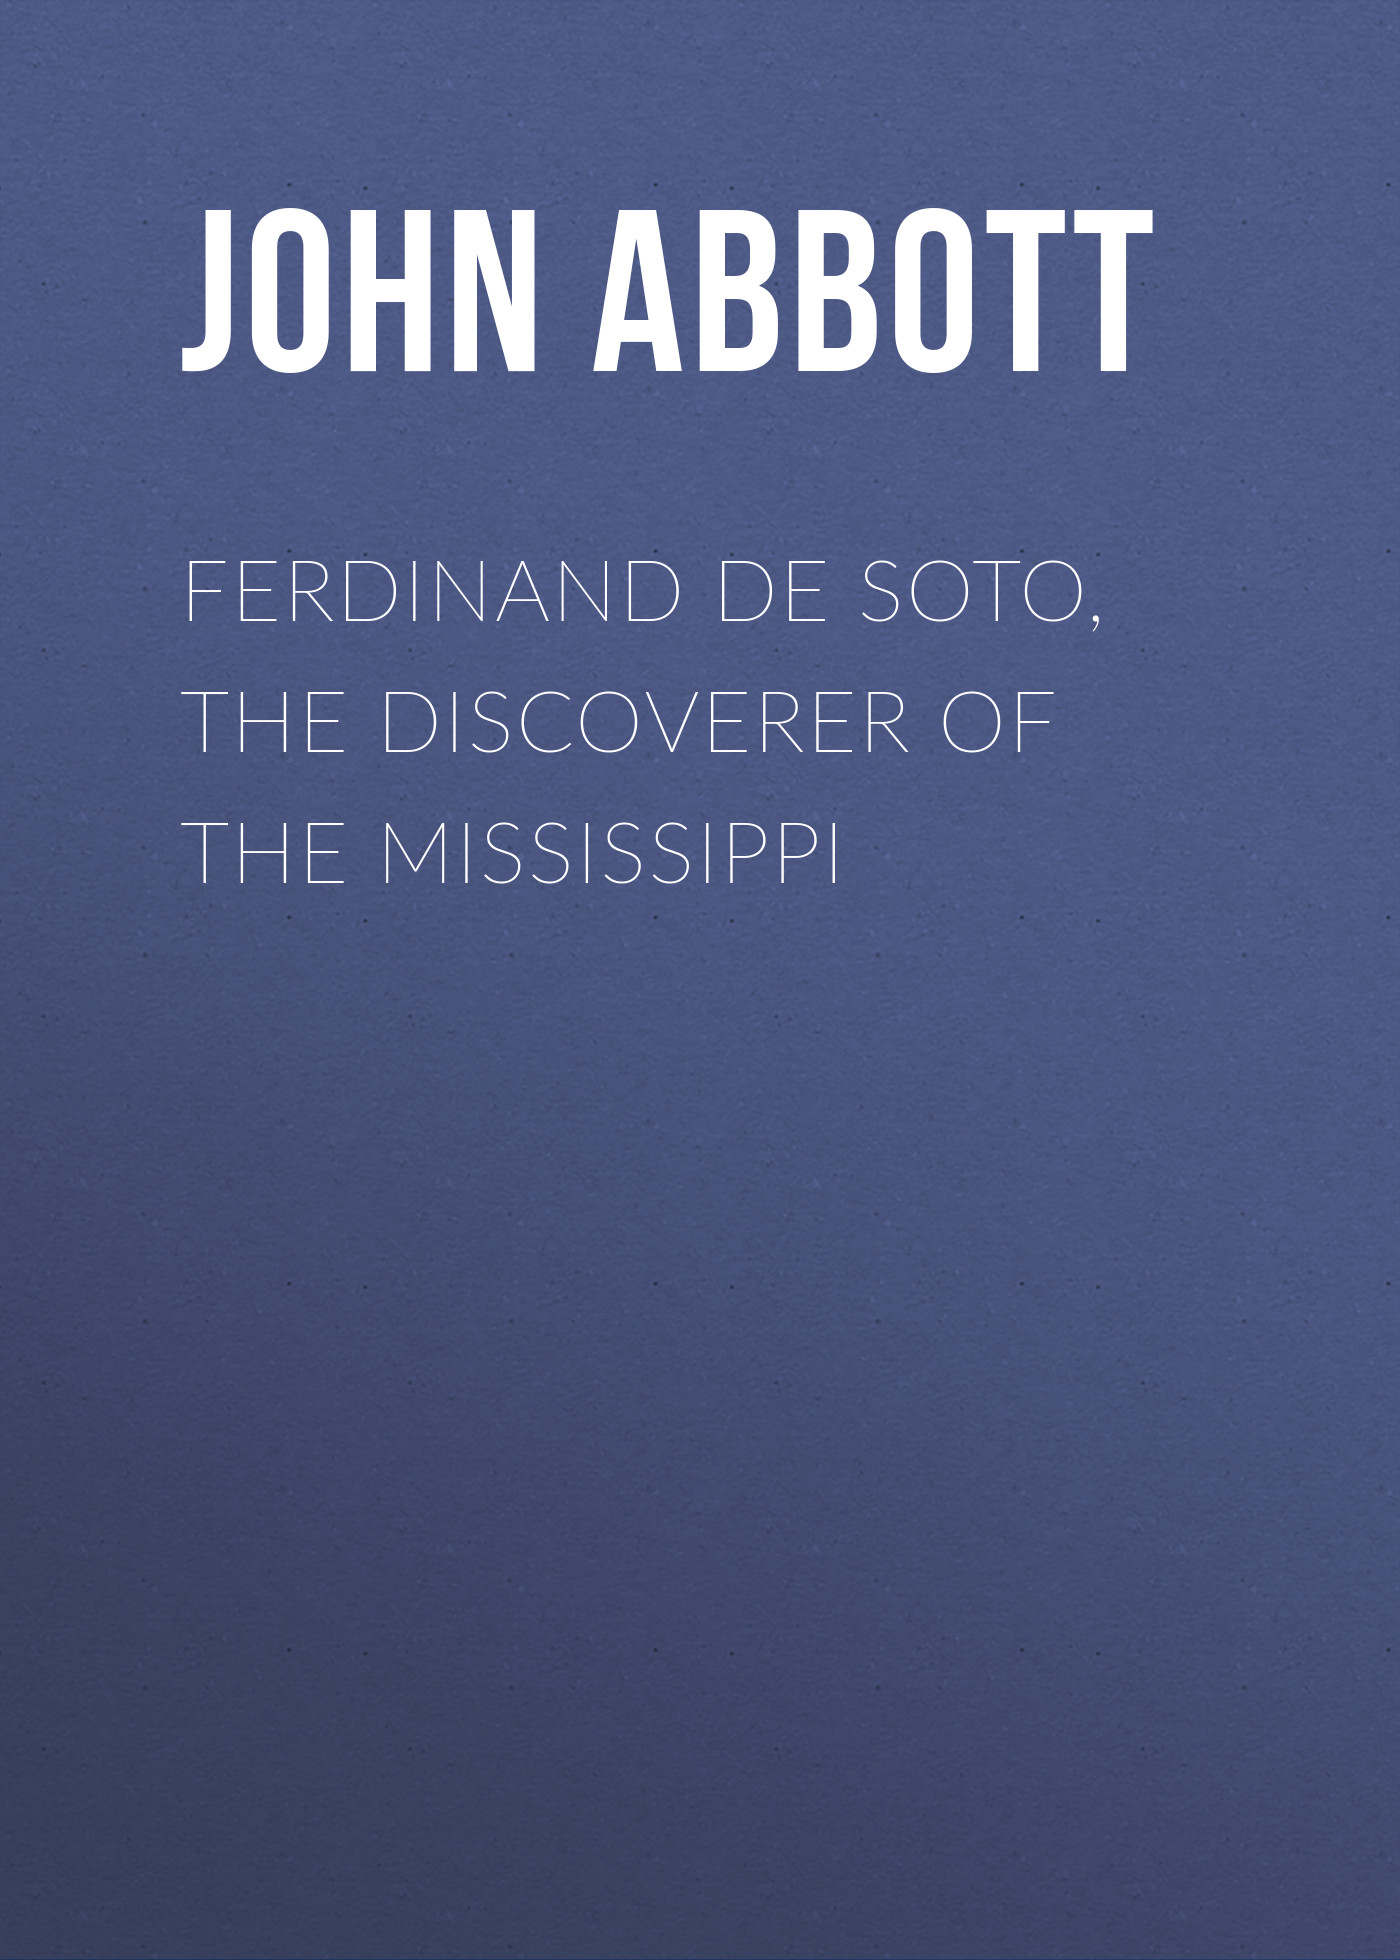 Abbott John Stevens Cabot Ferdinand De Soto, The Discoverer of the Mississippi amanda stevens the dollmaker